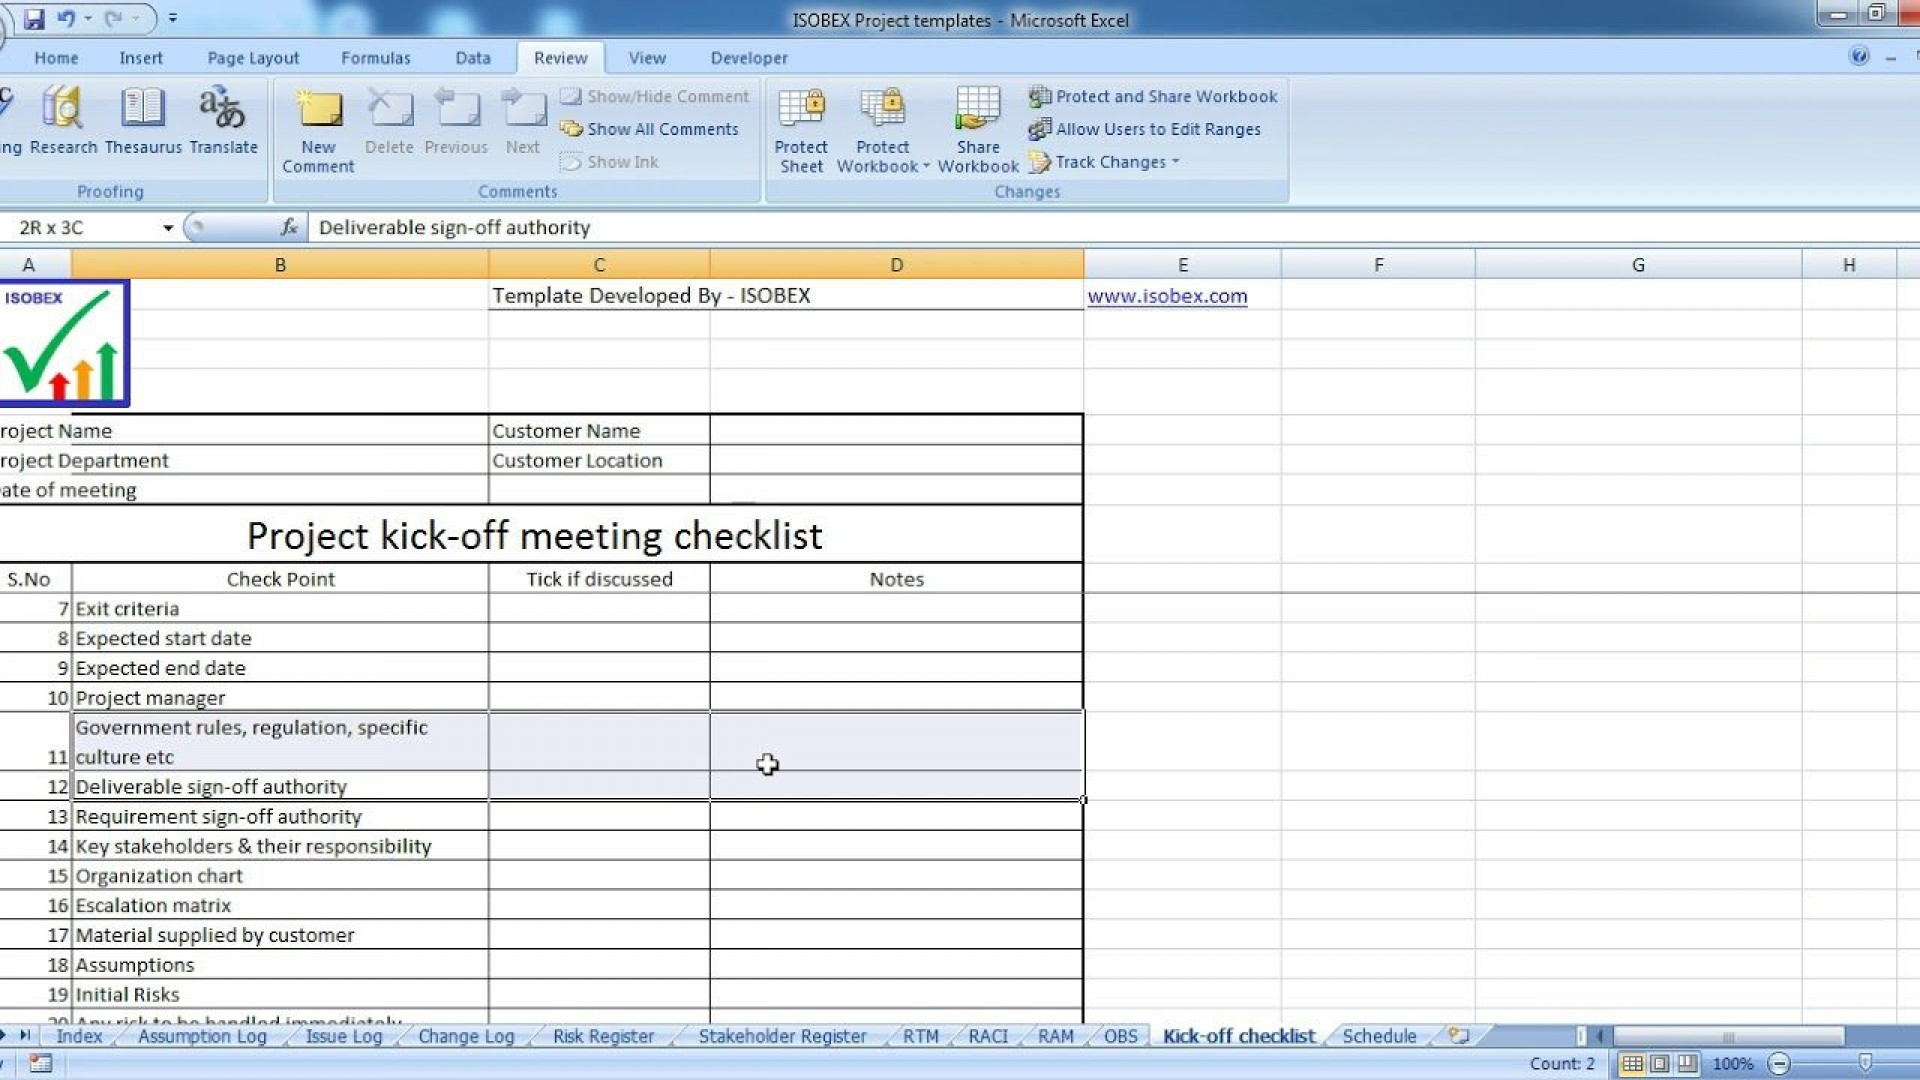 008 Wondrou Project Kickoff Meeting Template Excel Highest Quality 1920